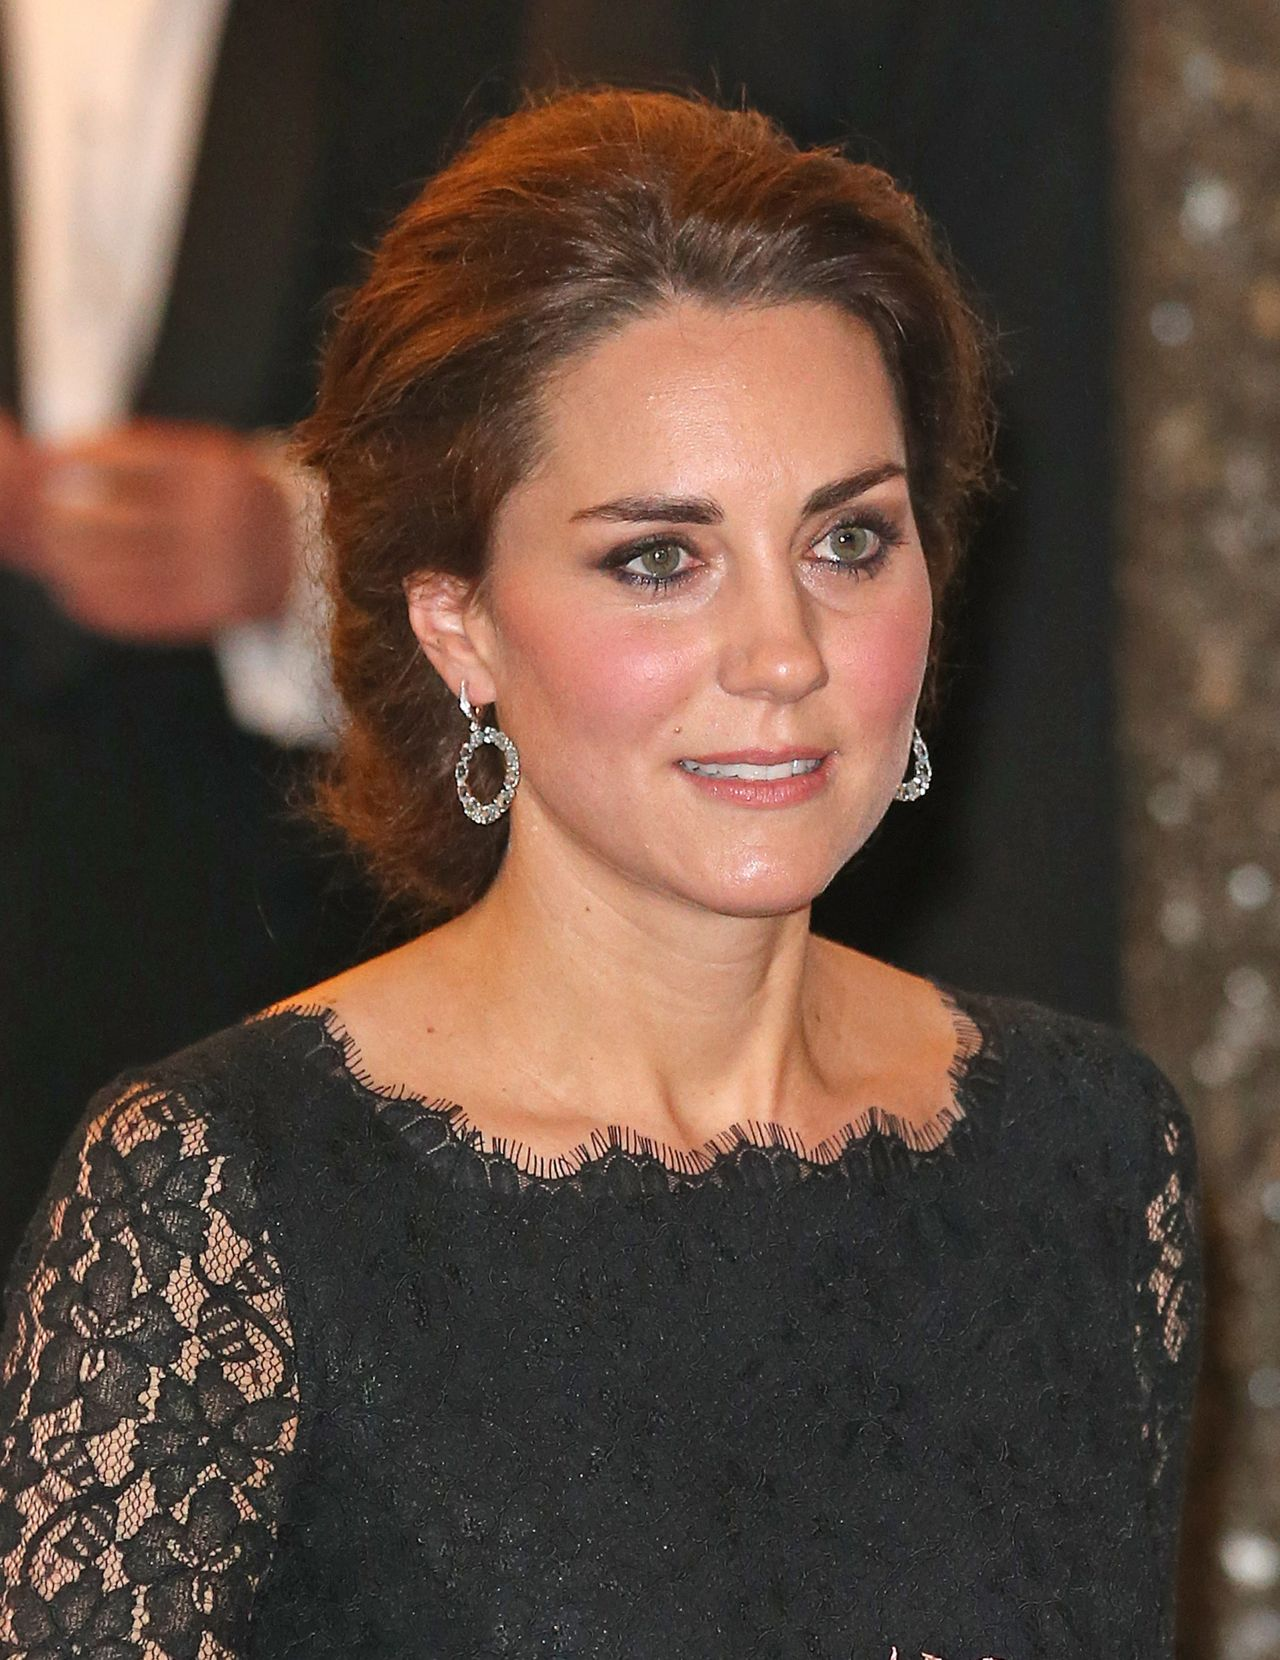 Kate Middleton Royal Variety Performance At The London